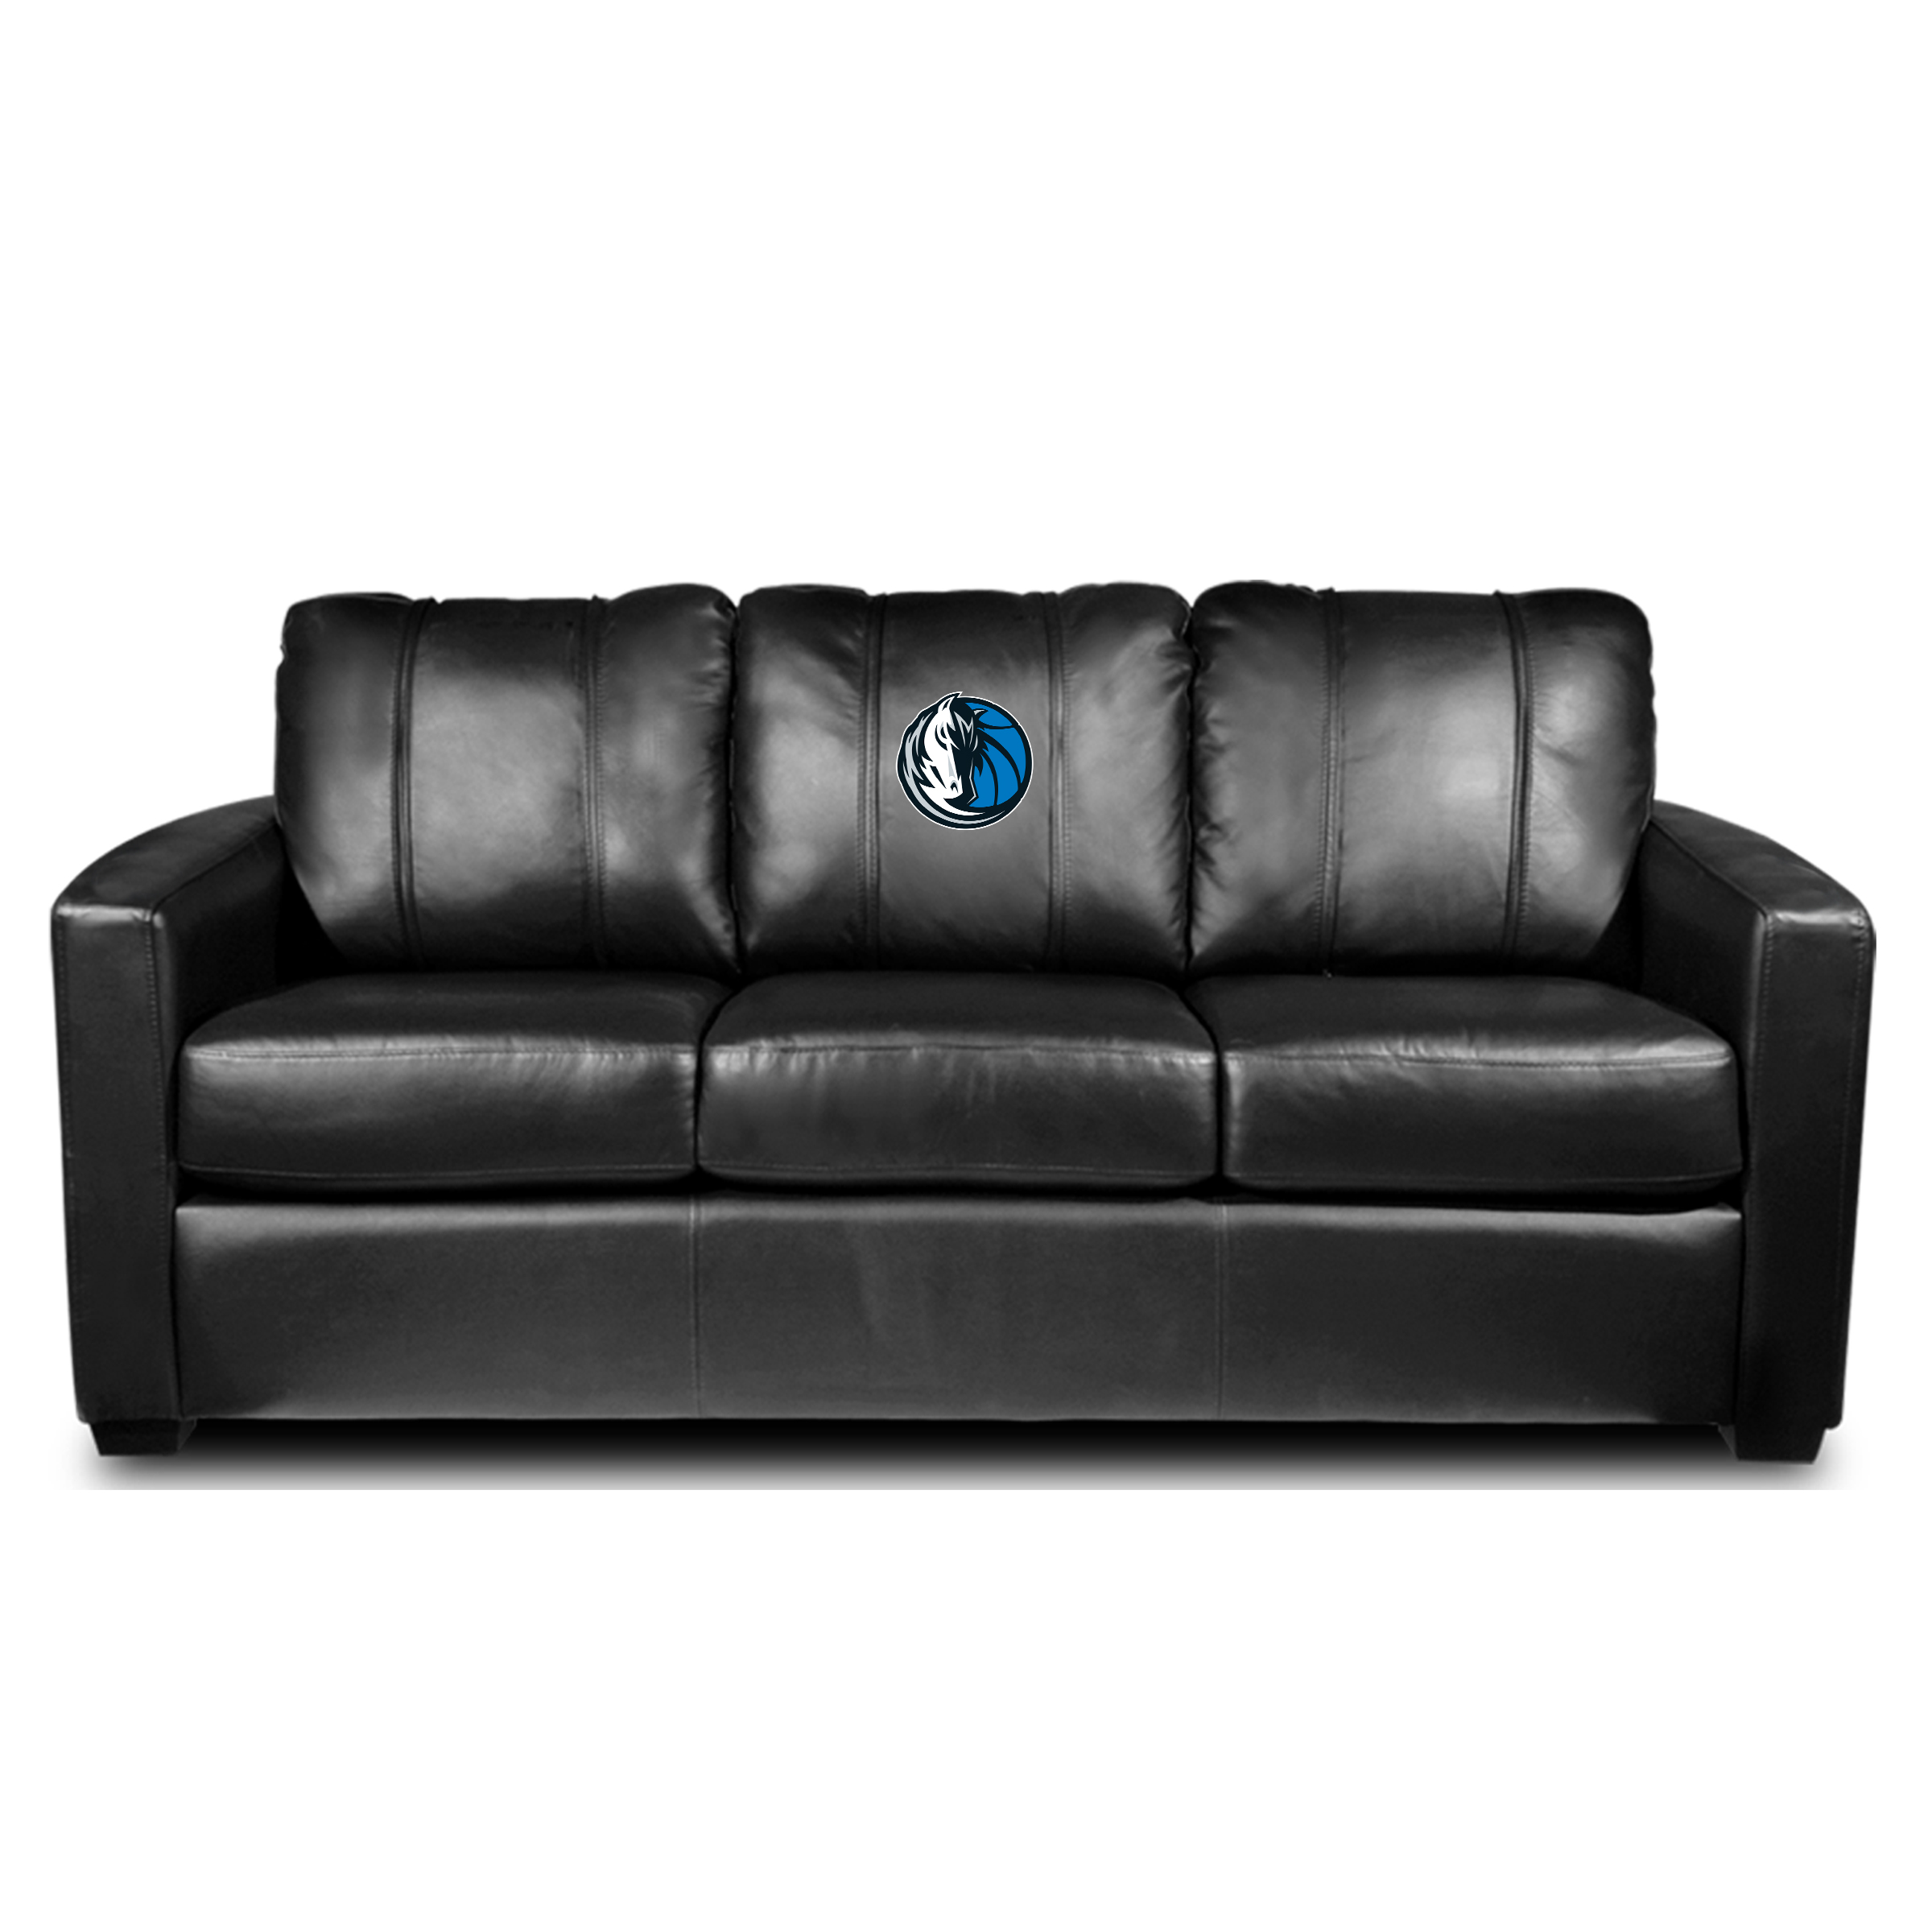 Dallas Mavericks NBA Silver Sofa